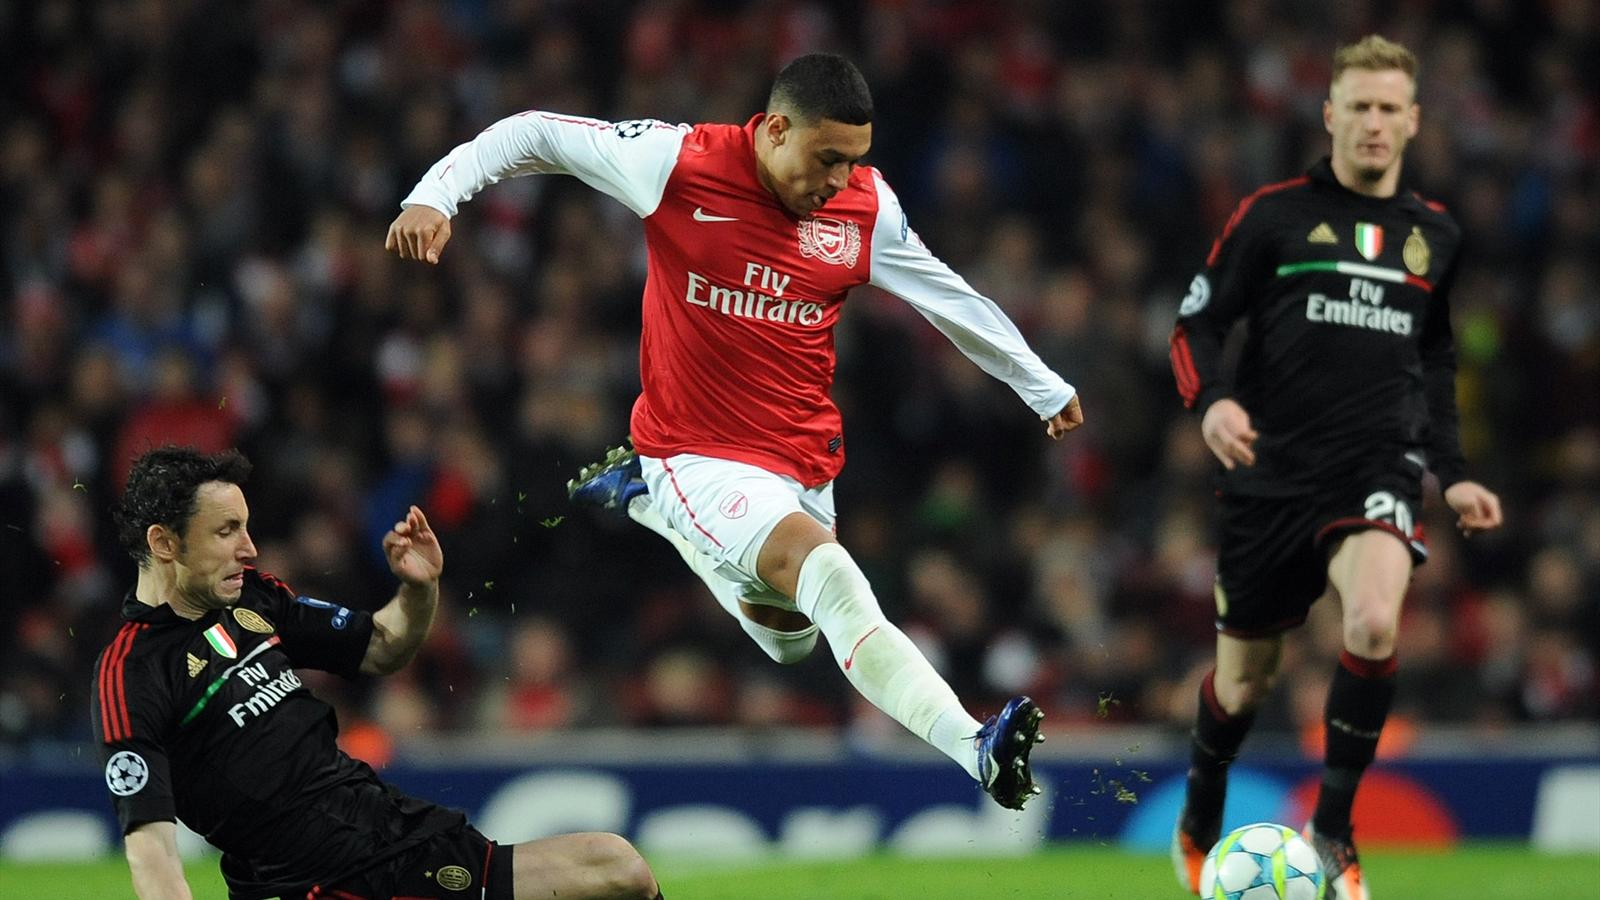 Arsenal's English striker Alex Oxlade-Chamberlain (R) vies with AC Milan's Dutch midfielder Mark Van Bommel (L)